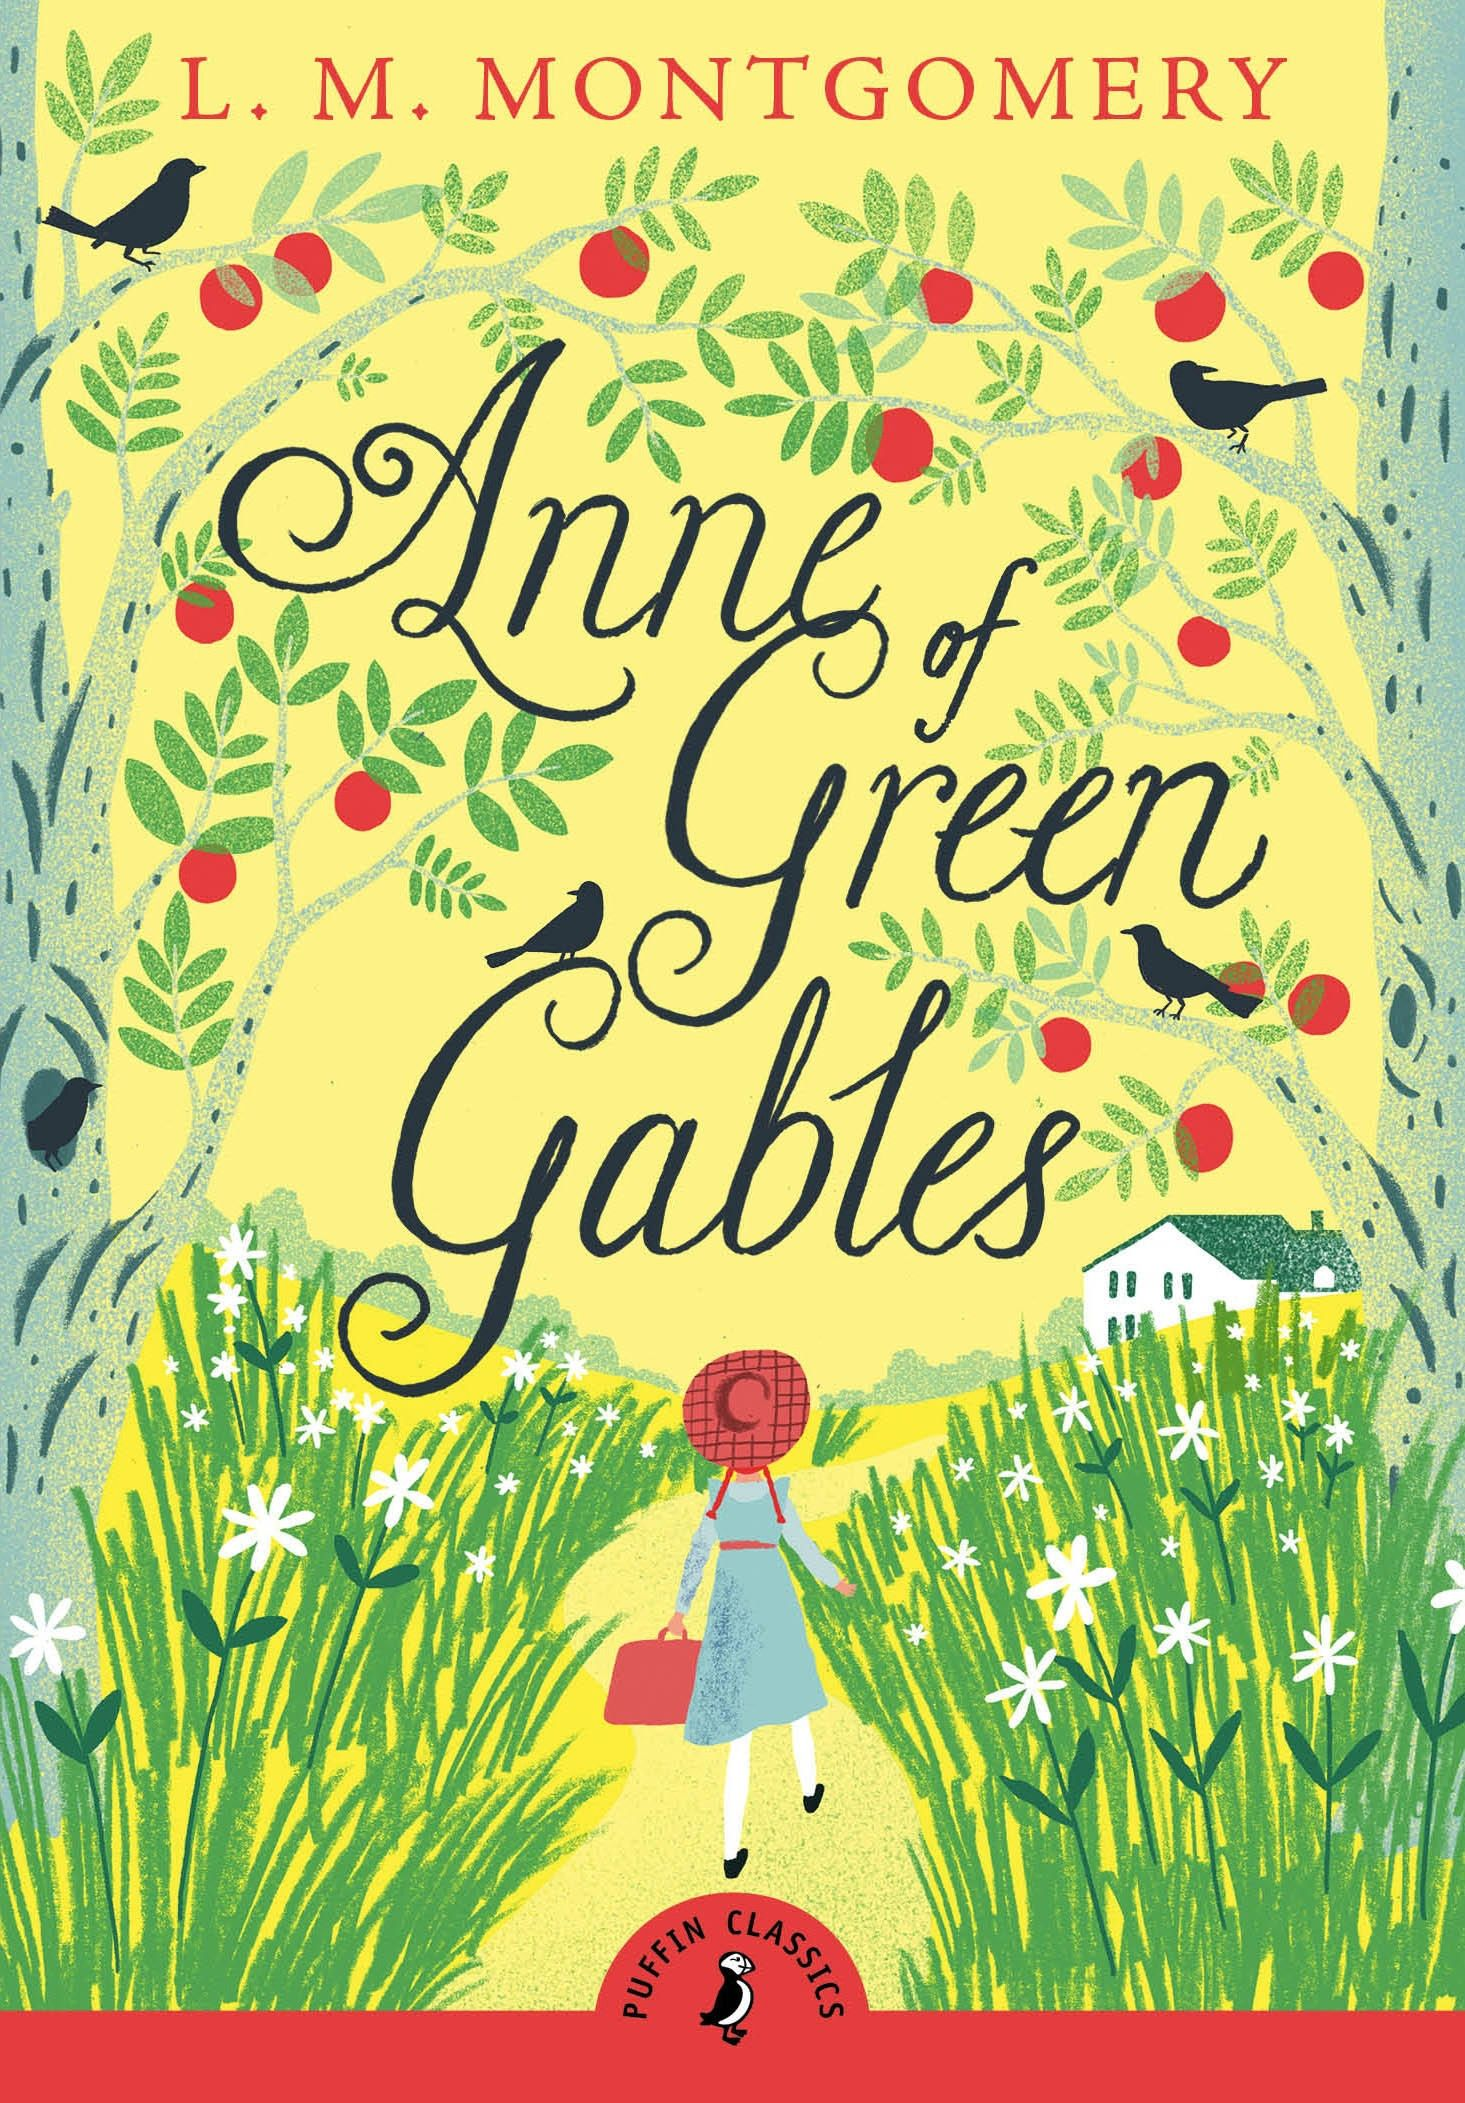 Pin by antonin on book covers pinterest book covers the cuthberts are in for a shock they are expecting an orphan boy to help with the work at green gables but a skinny red haired girl turns up instead fandeluxe Gallery